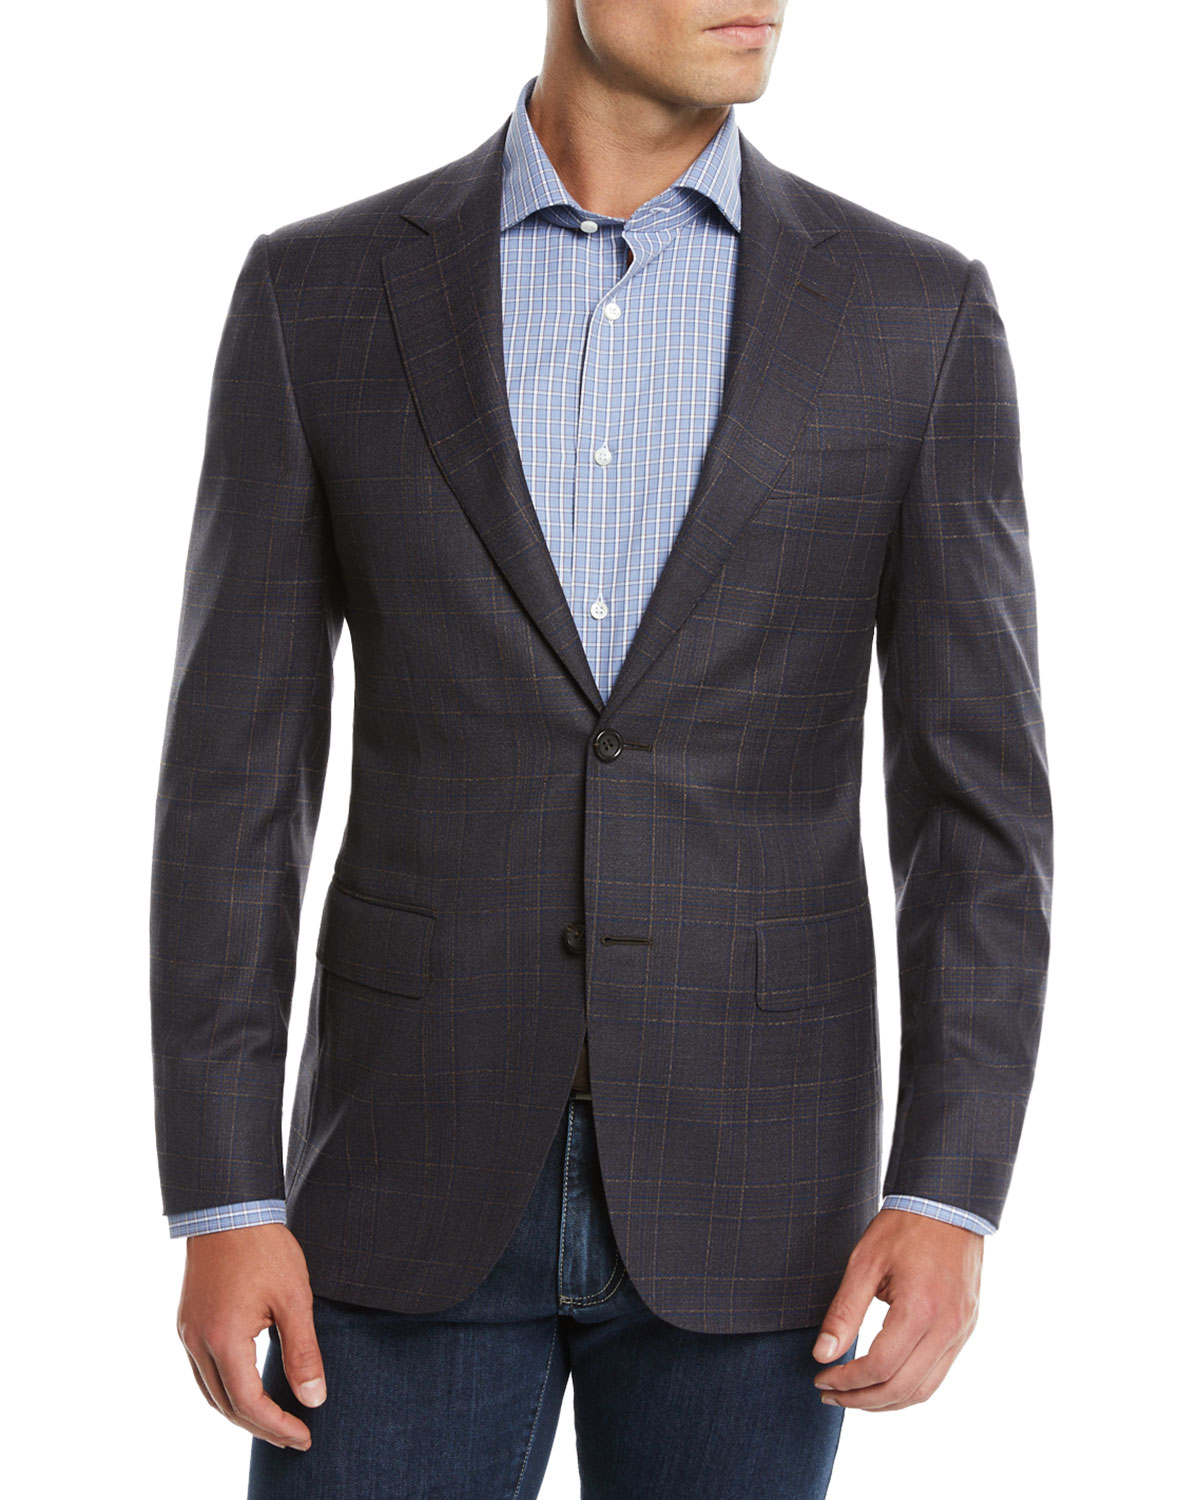 Men's Super 120s Wool Plaid Sport Coat Jacket